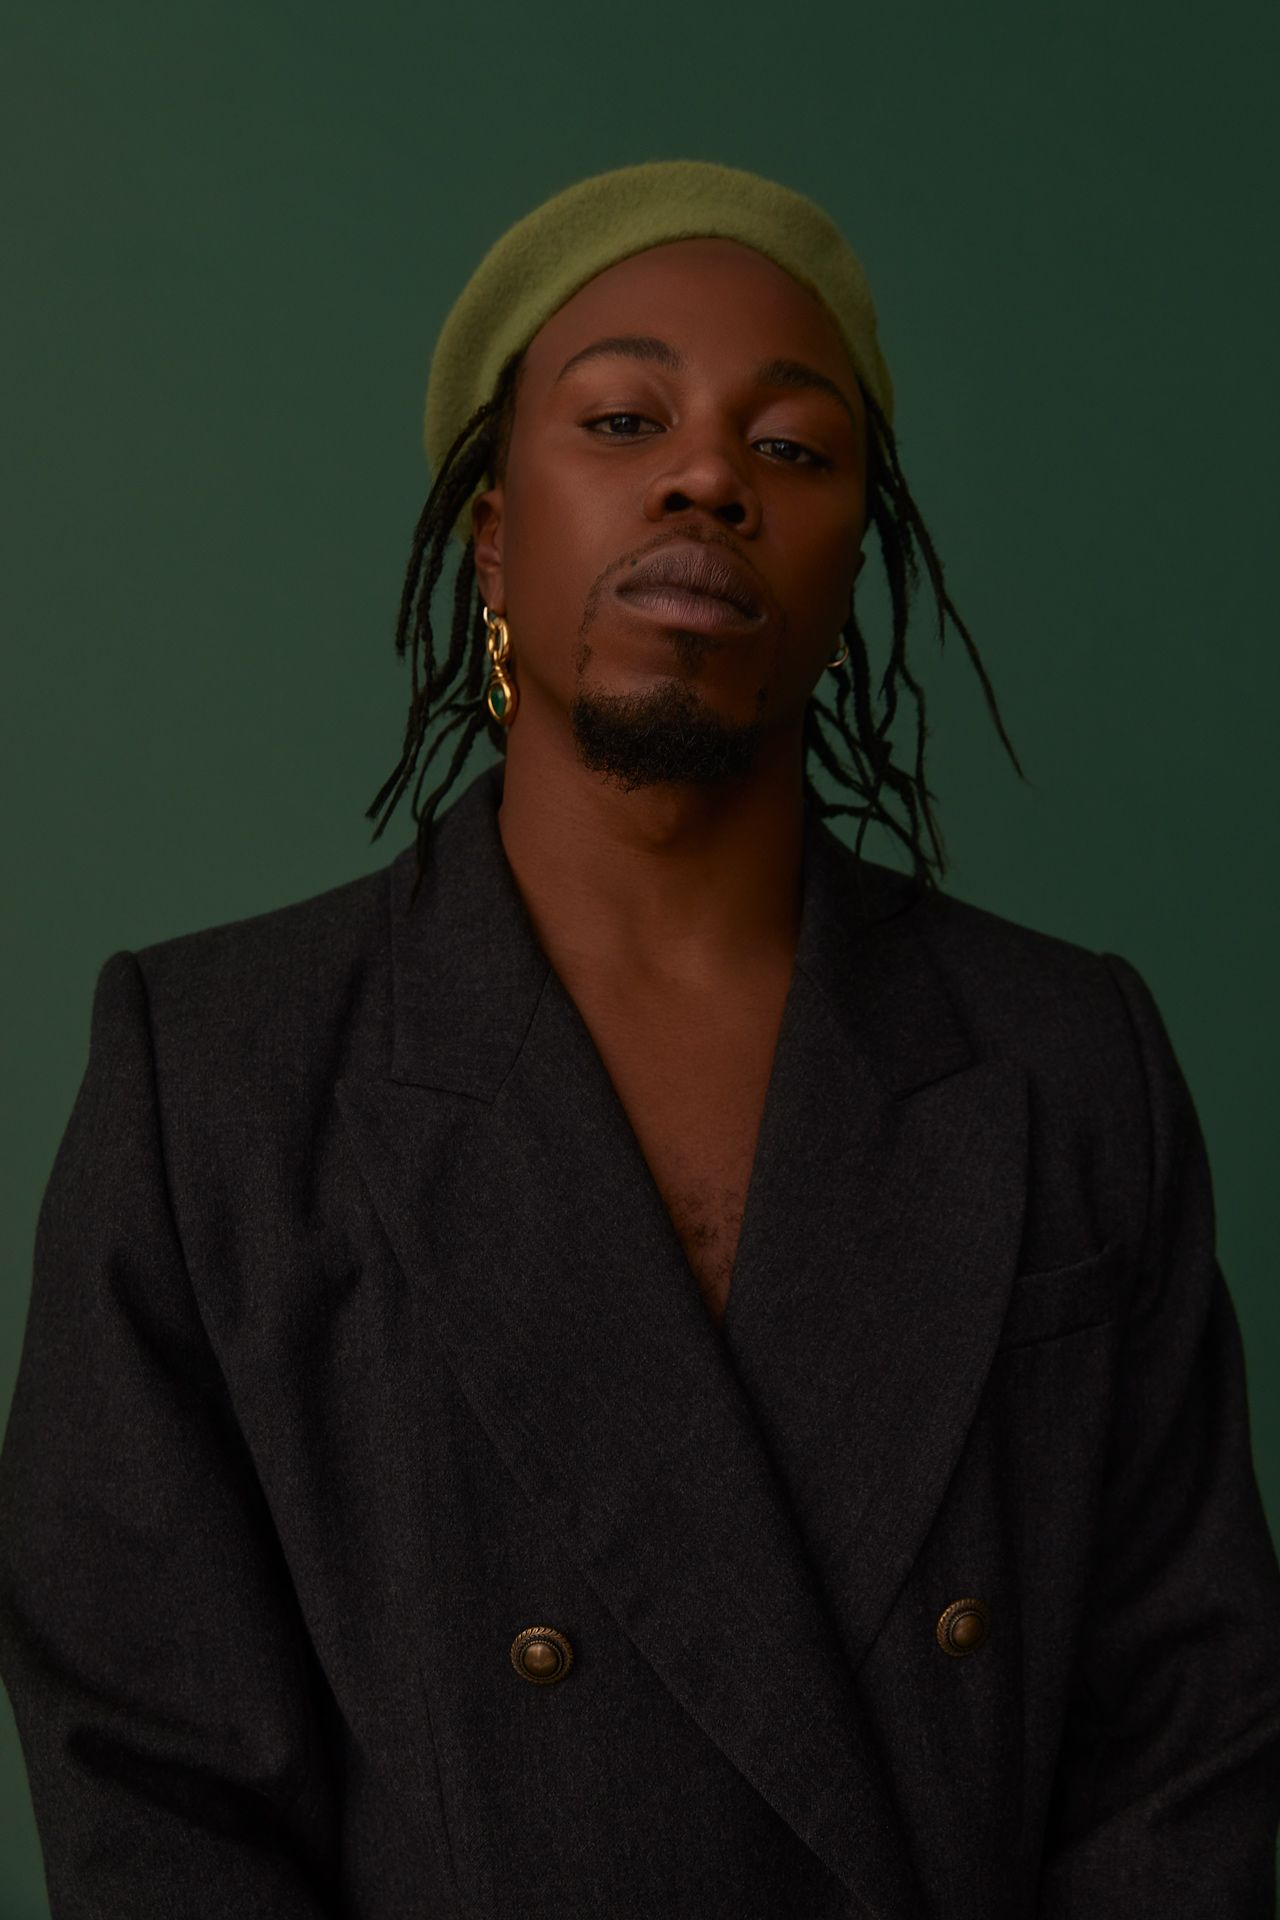 black male model wearing light green beret black suit jacket looking at camera on dark green background photographed by Kelly Jacob for LEV